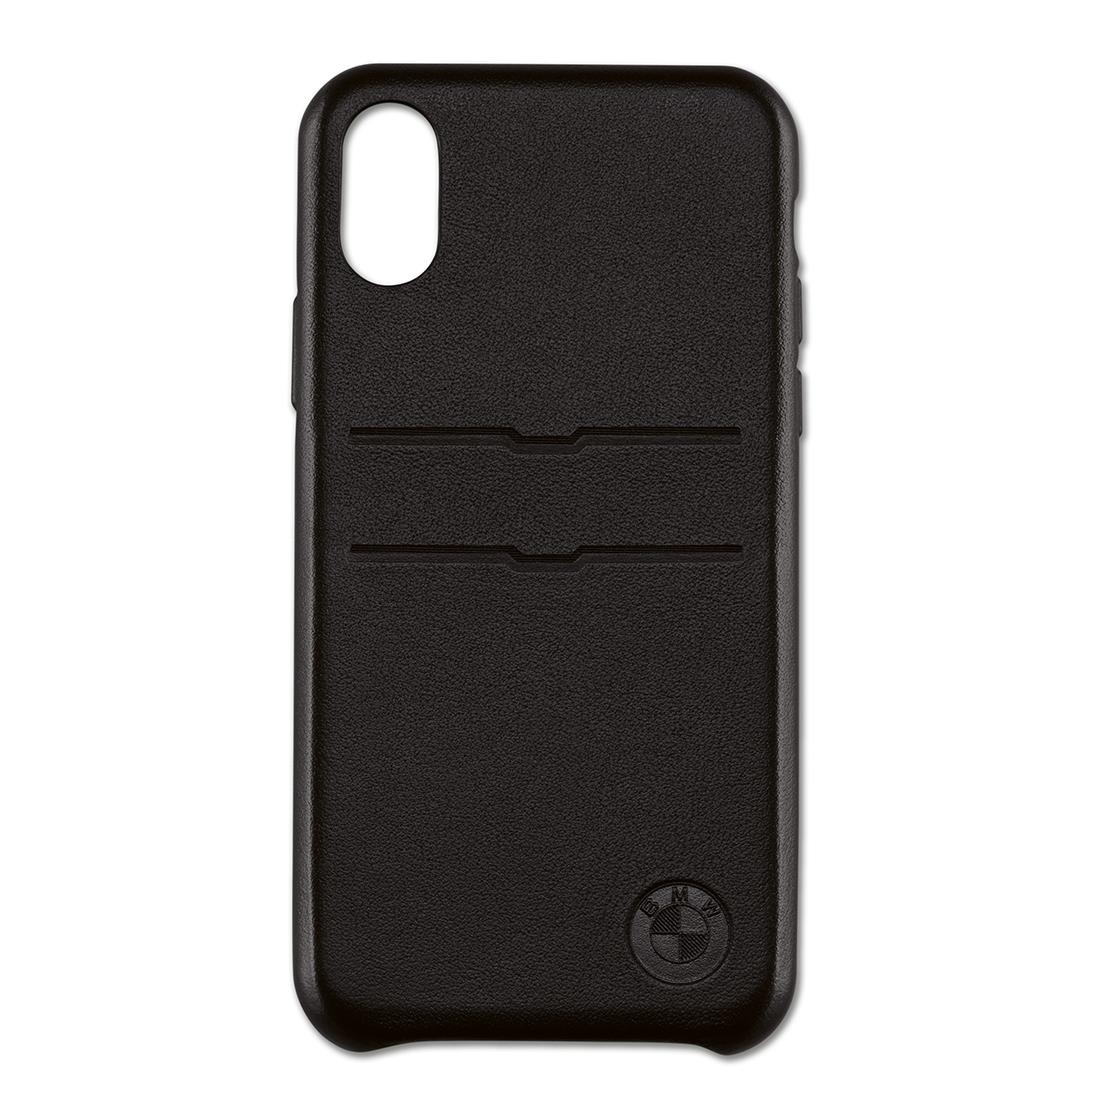 BMW Mobile Phone Case With Card Slots